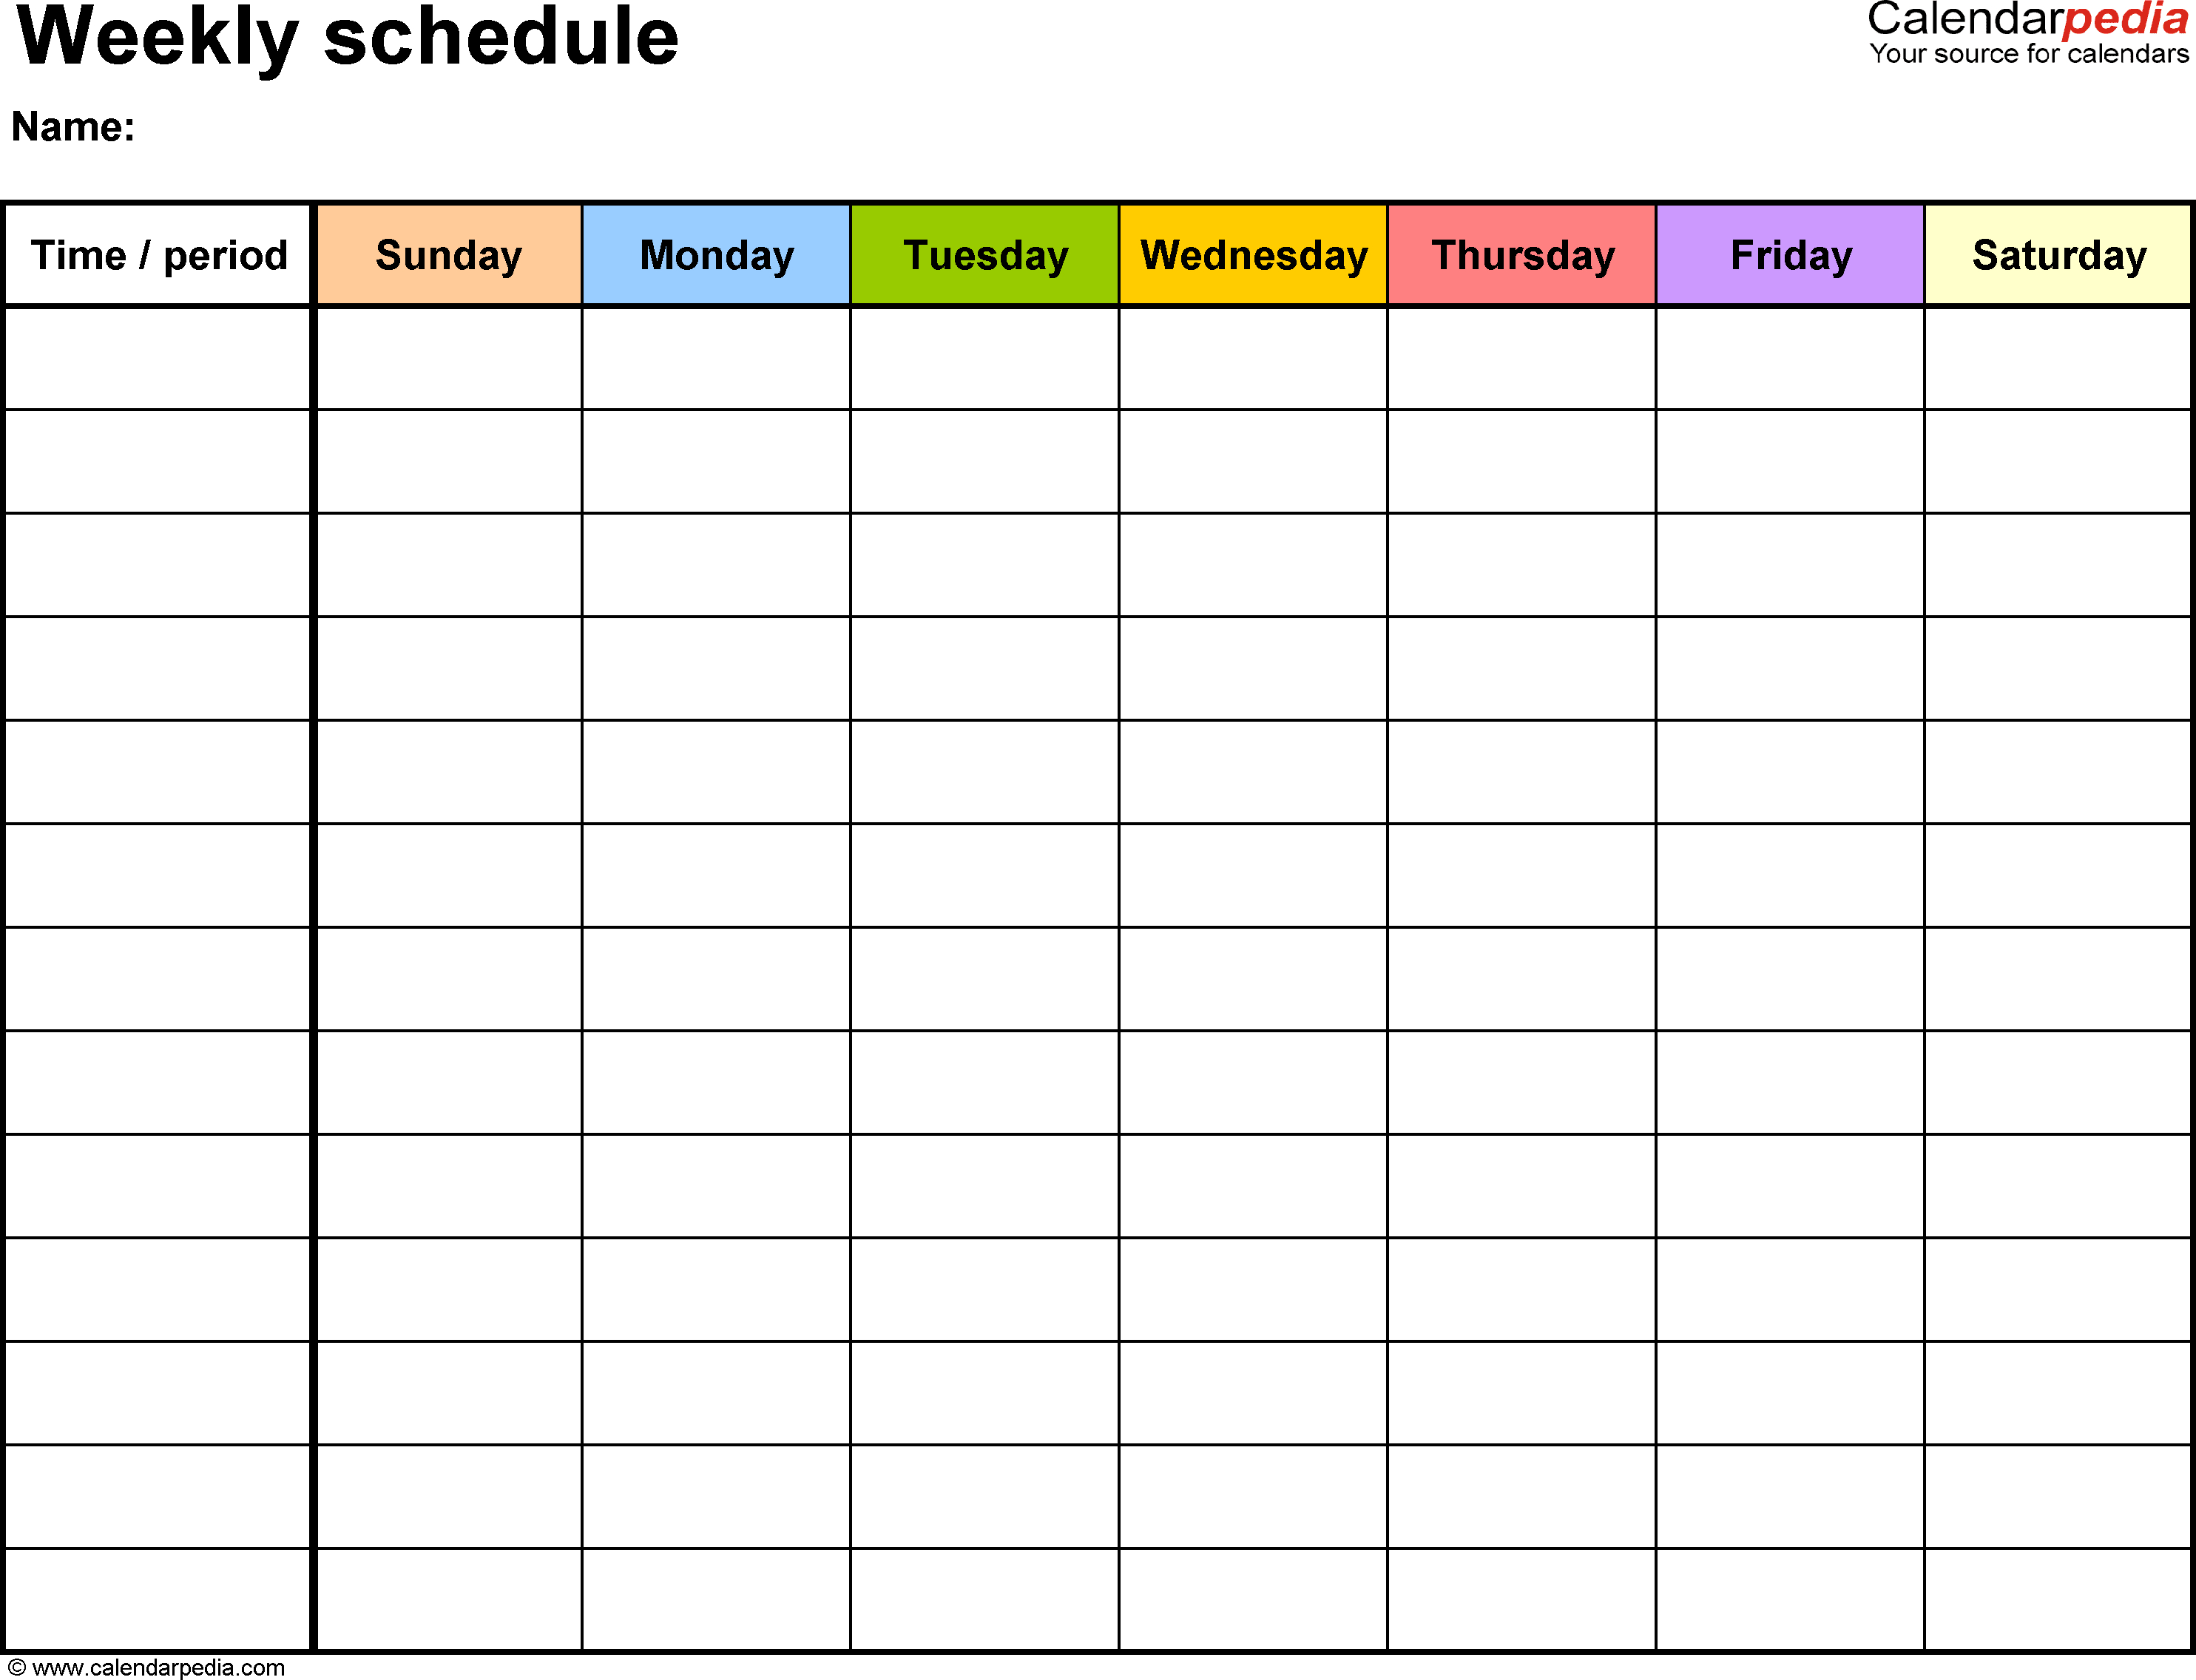 Scheduling Spreadsheet Free In Free Weekly Schedule